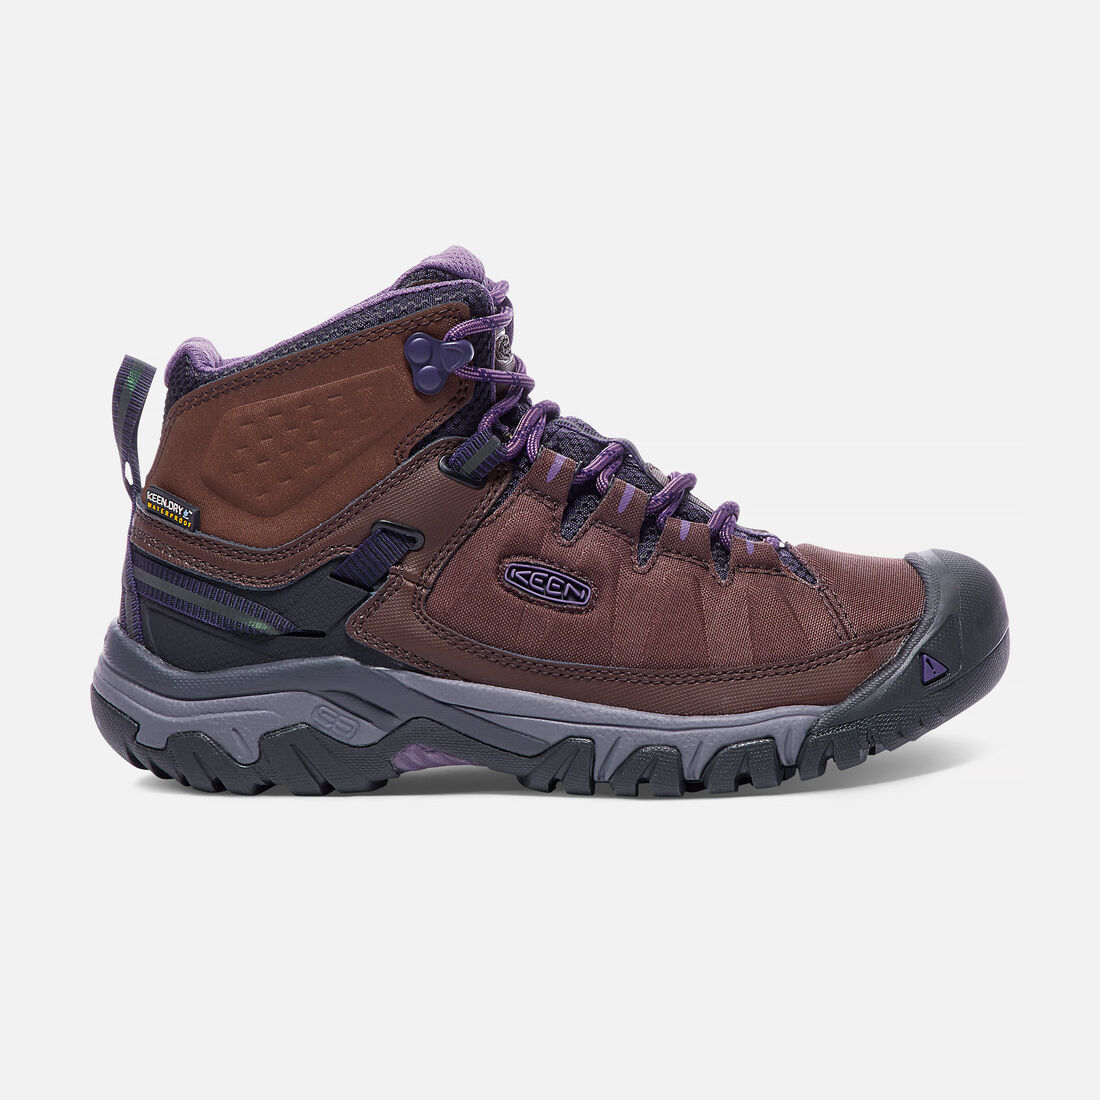 Women's TARGHEE EXP Waterproof Mid in French Roast/Purple Plumeria - large view.